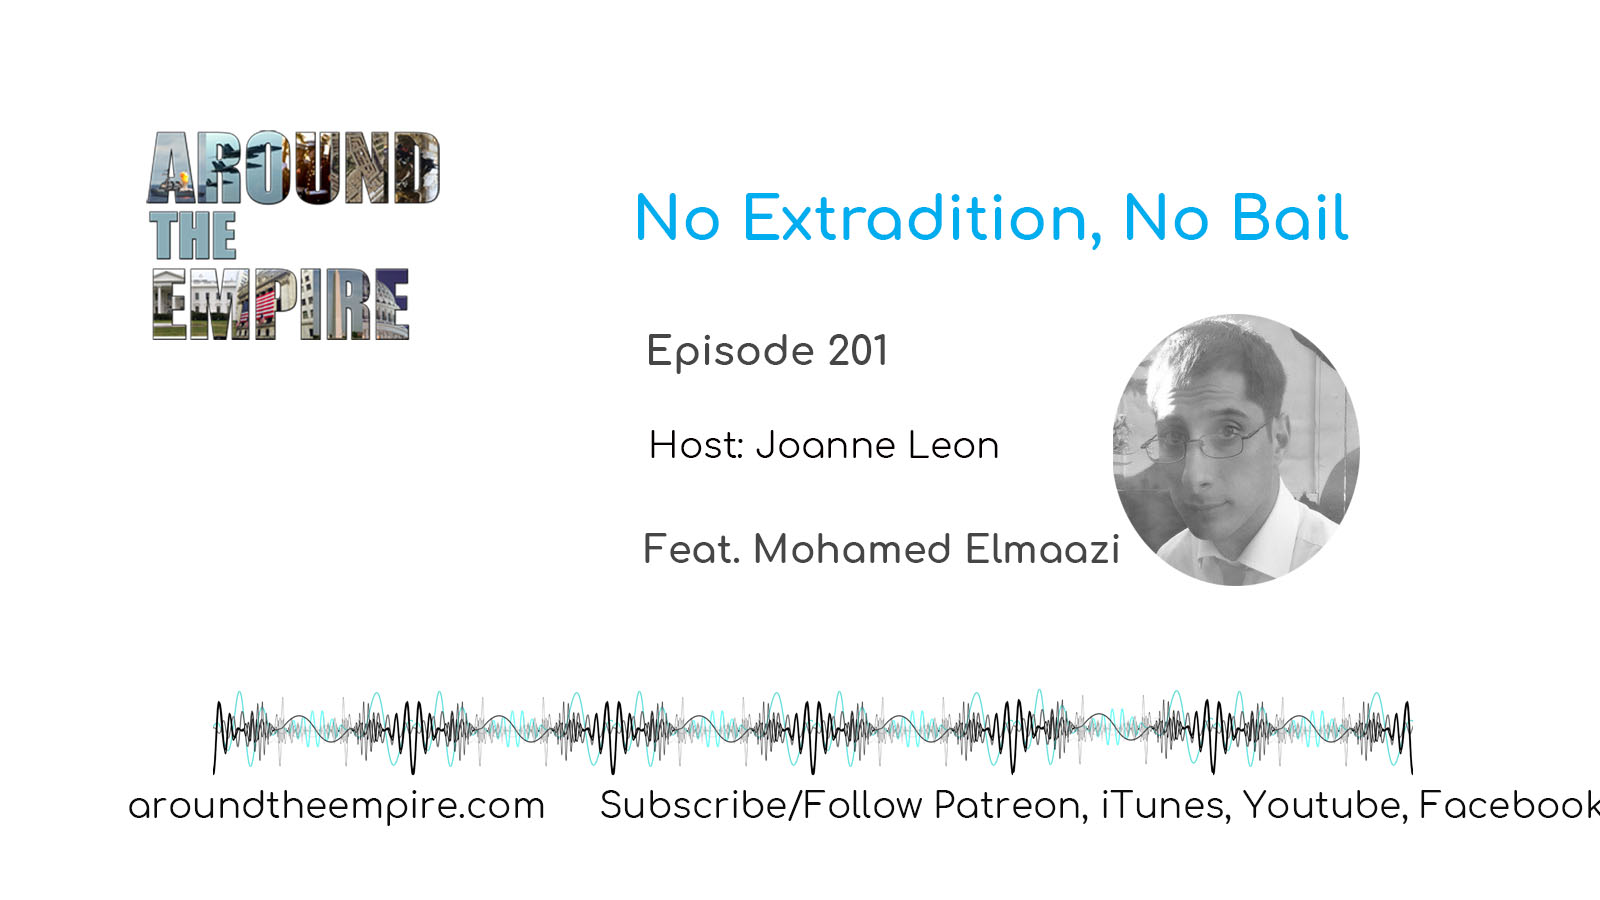 Ep 201 No Extradition and No Bail feat Mohamed Elmaazi